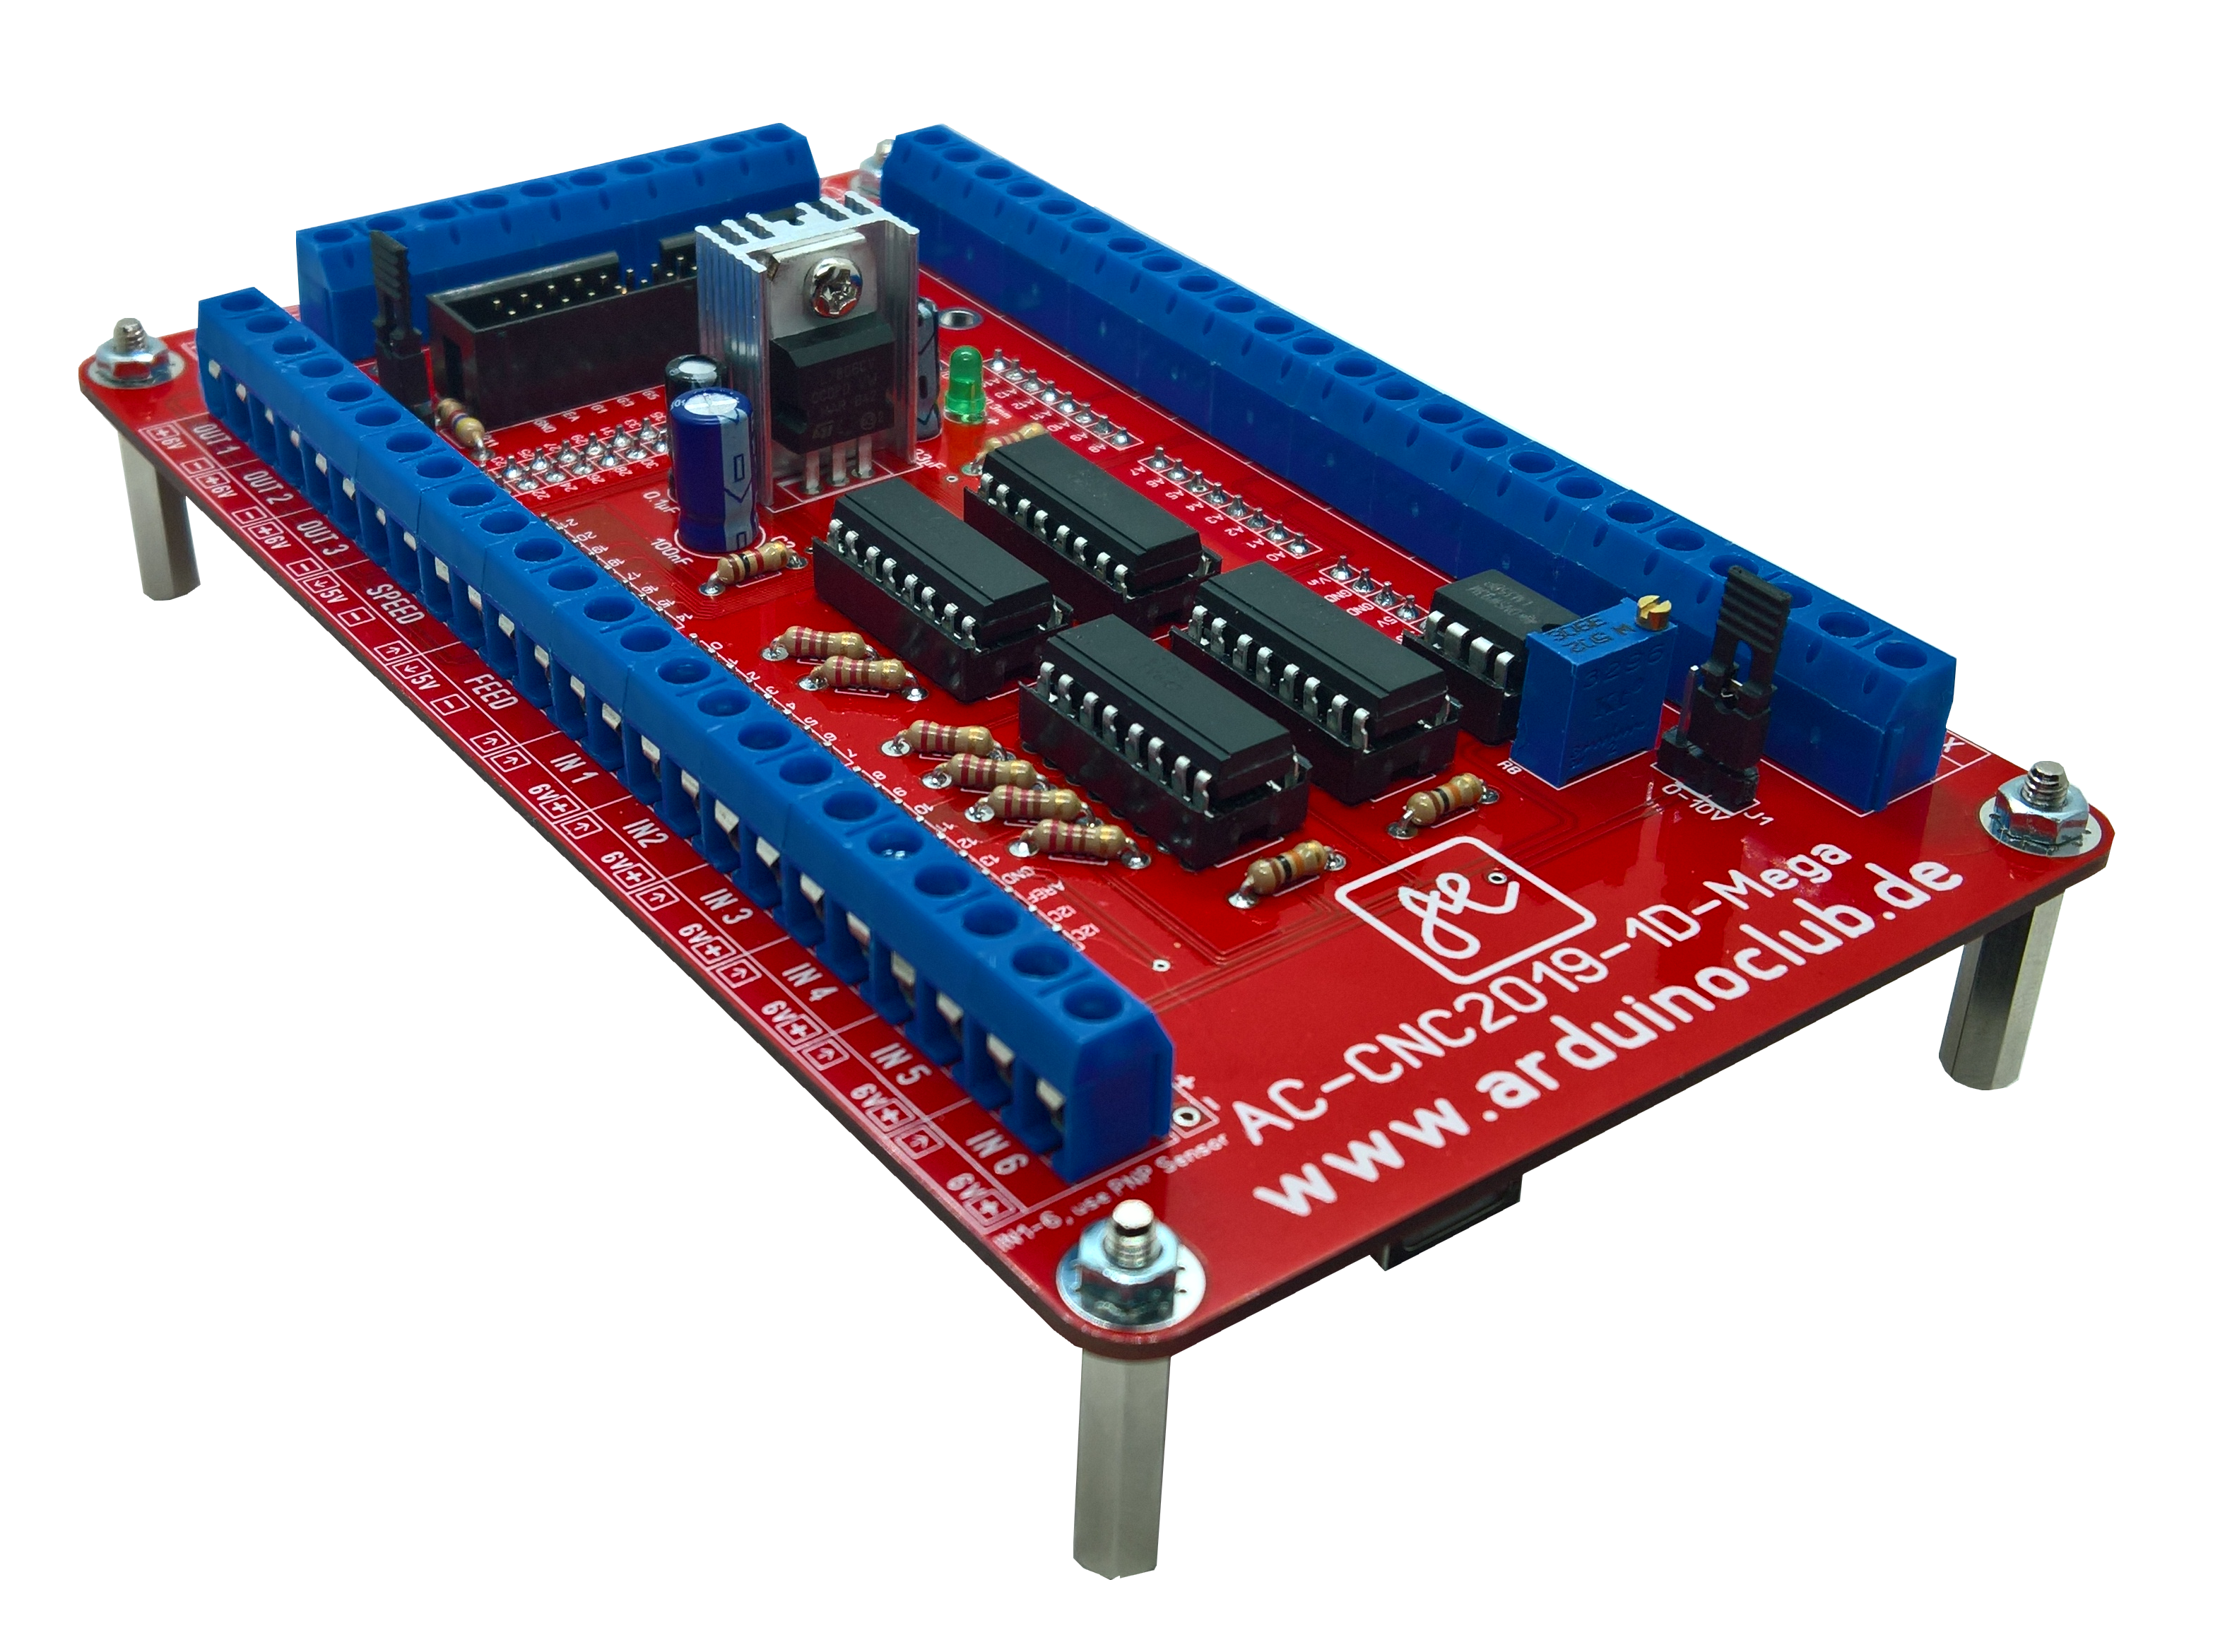 The new CNC motion controller for ESTLCAM based on the